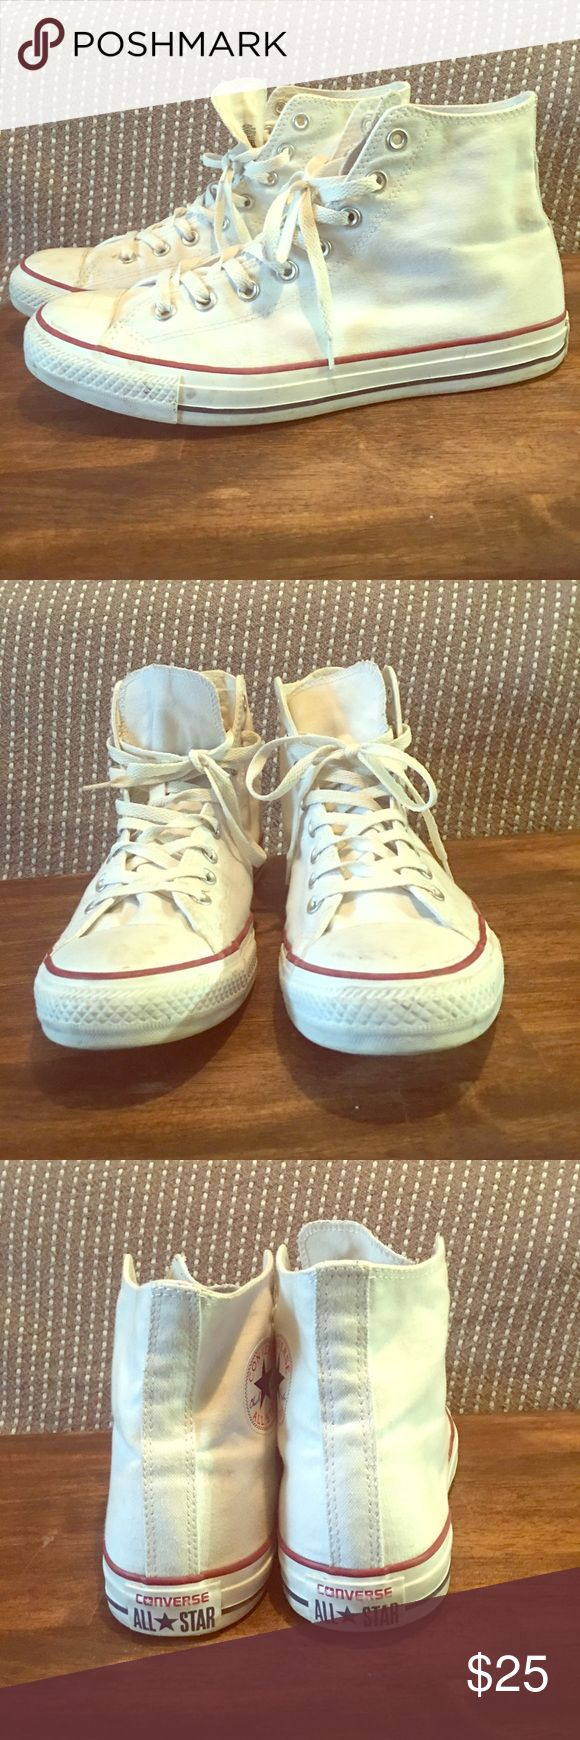 Converse High Top White Chuck Taylor's Light worn White High Top Chuck Taylors. Converse Shoes Sneakers